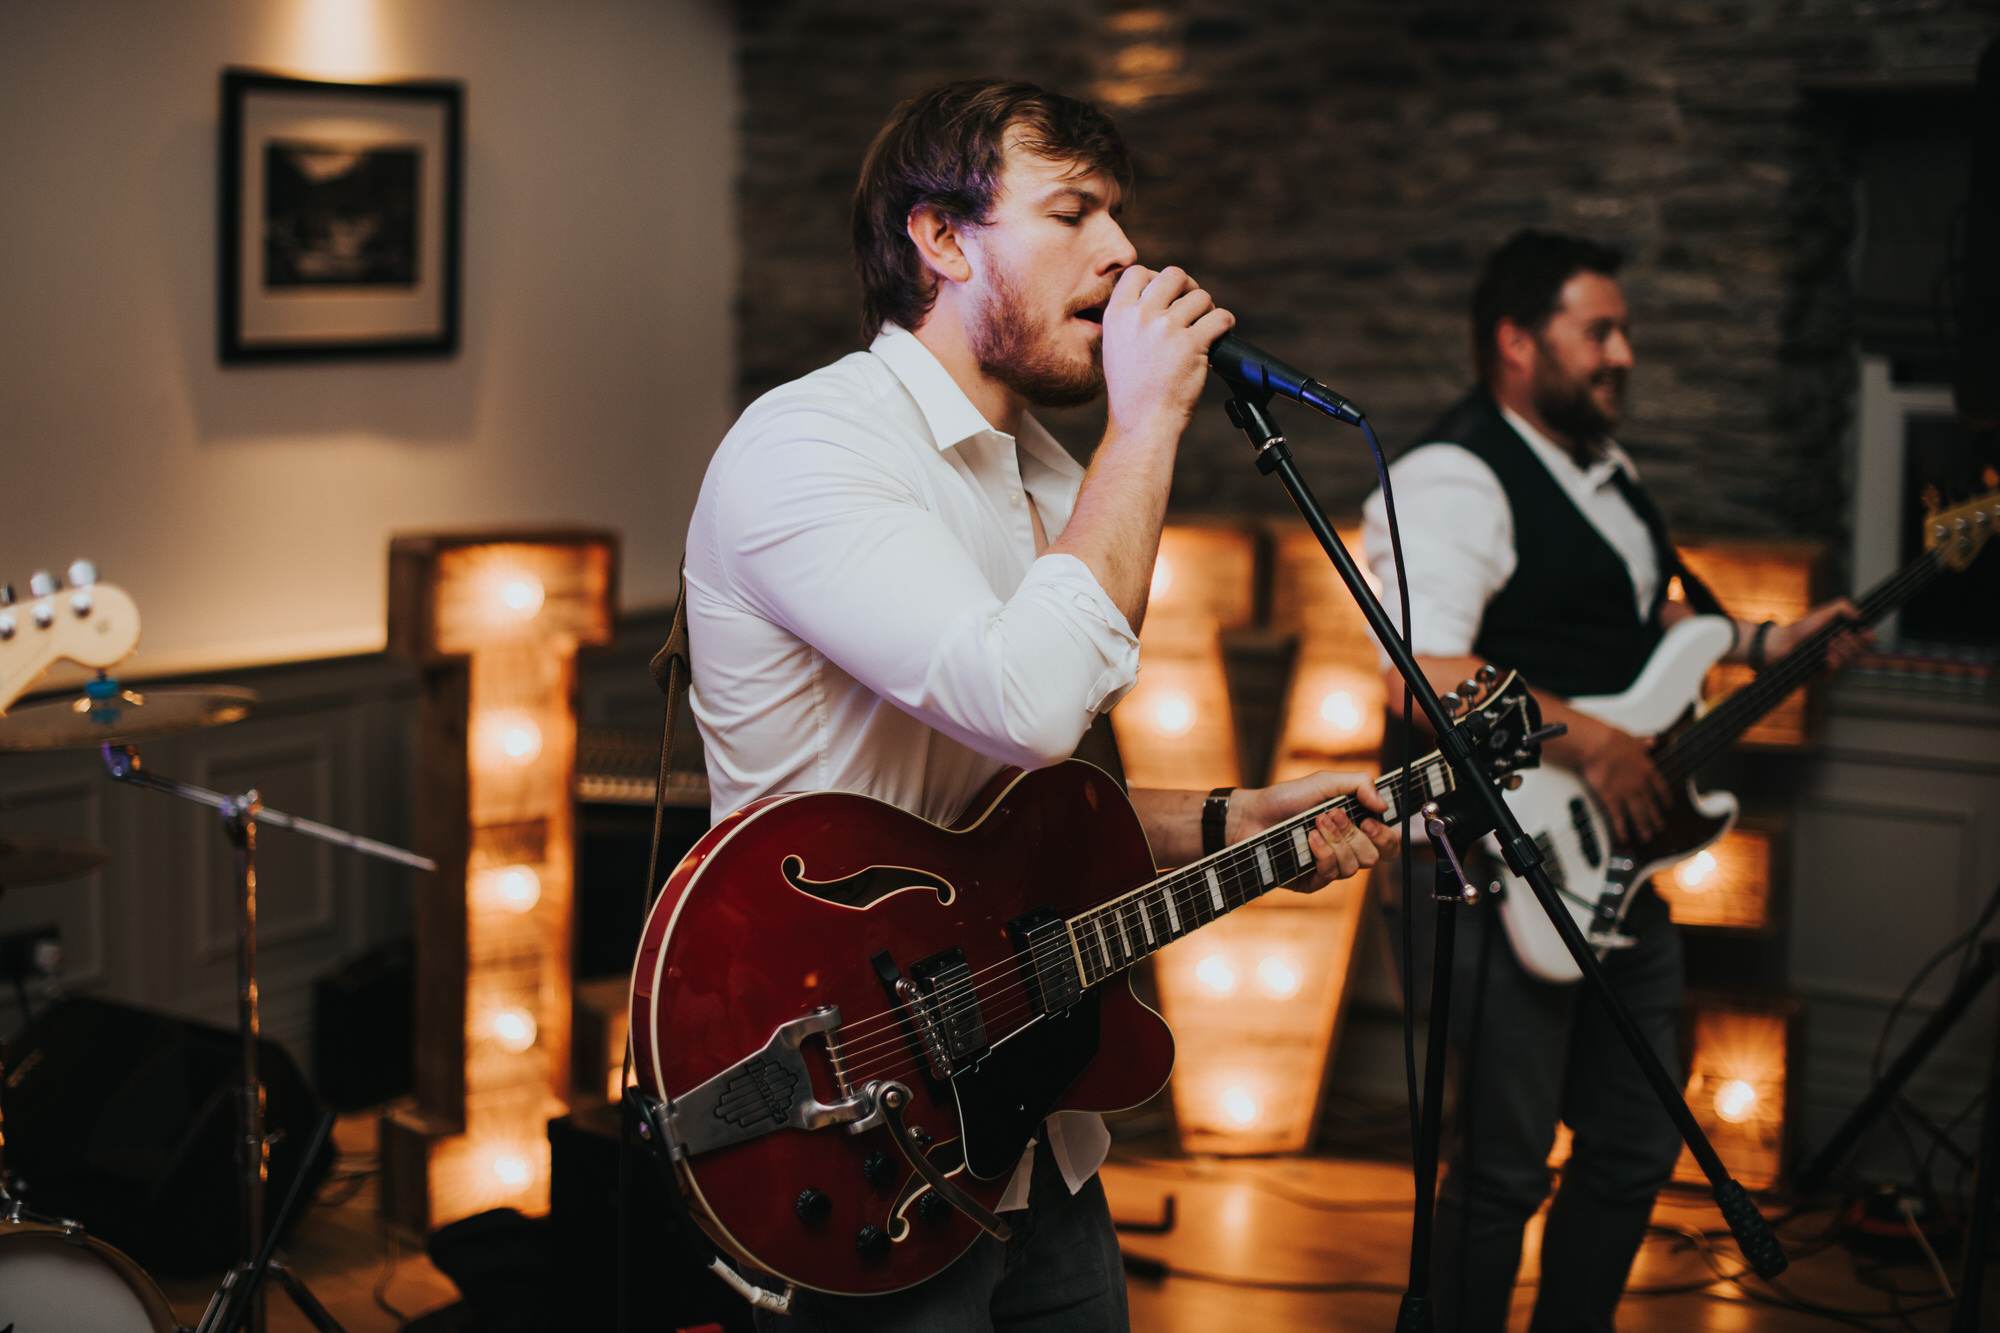 Emlyn hotel wales wedding photographer 38